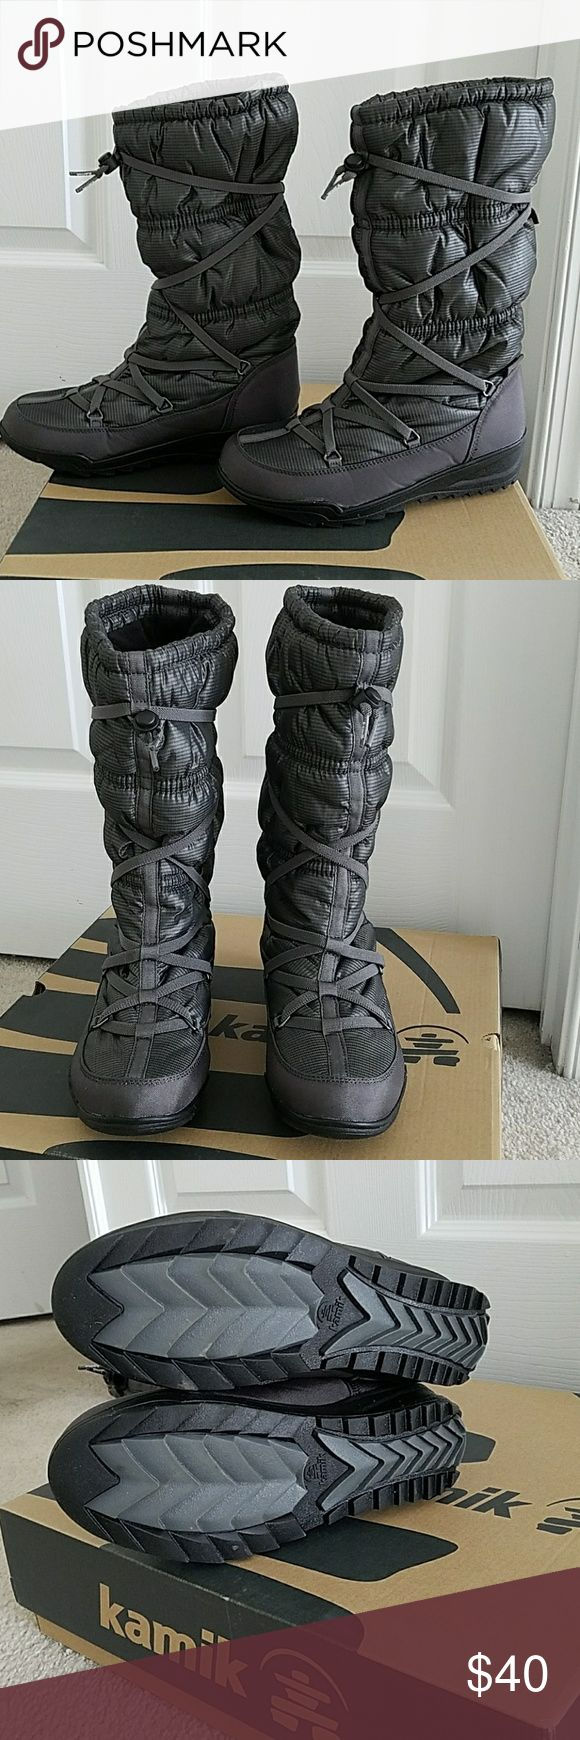 Kamik Woman's Snow boots, worn 2 times Stylish Comfortable Kamik Waterproof boots. In a slate/gray color with bungie cord that can be adjusted.  It's a 8, but narrow. If worn with thick socks, will be snug. Fits better a 7 or 7 1/2 with thick winter socks. Kamik Shoes Winter & Rain Boots